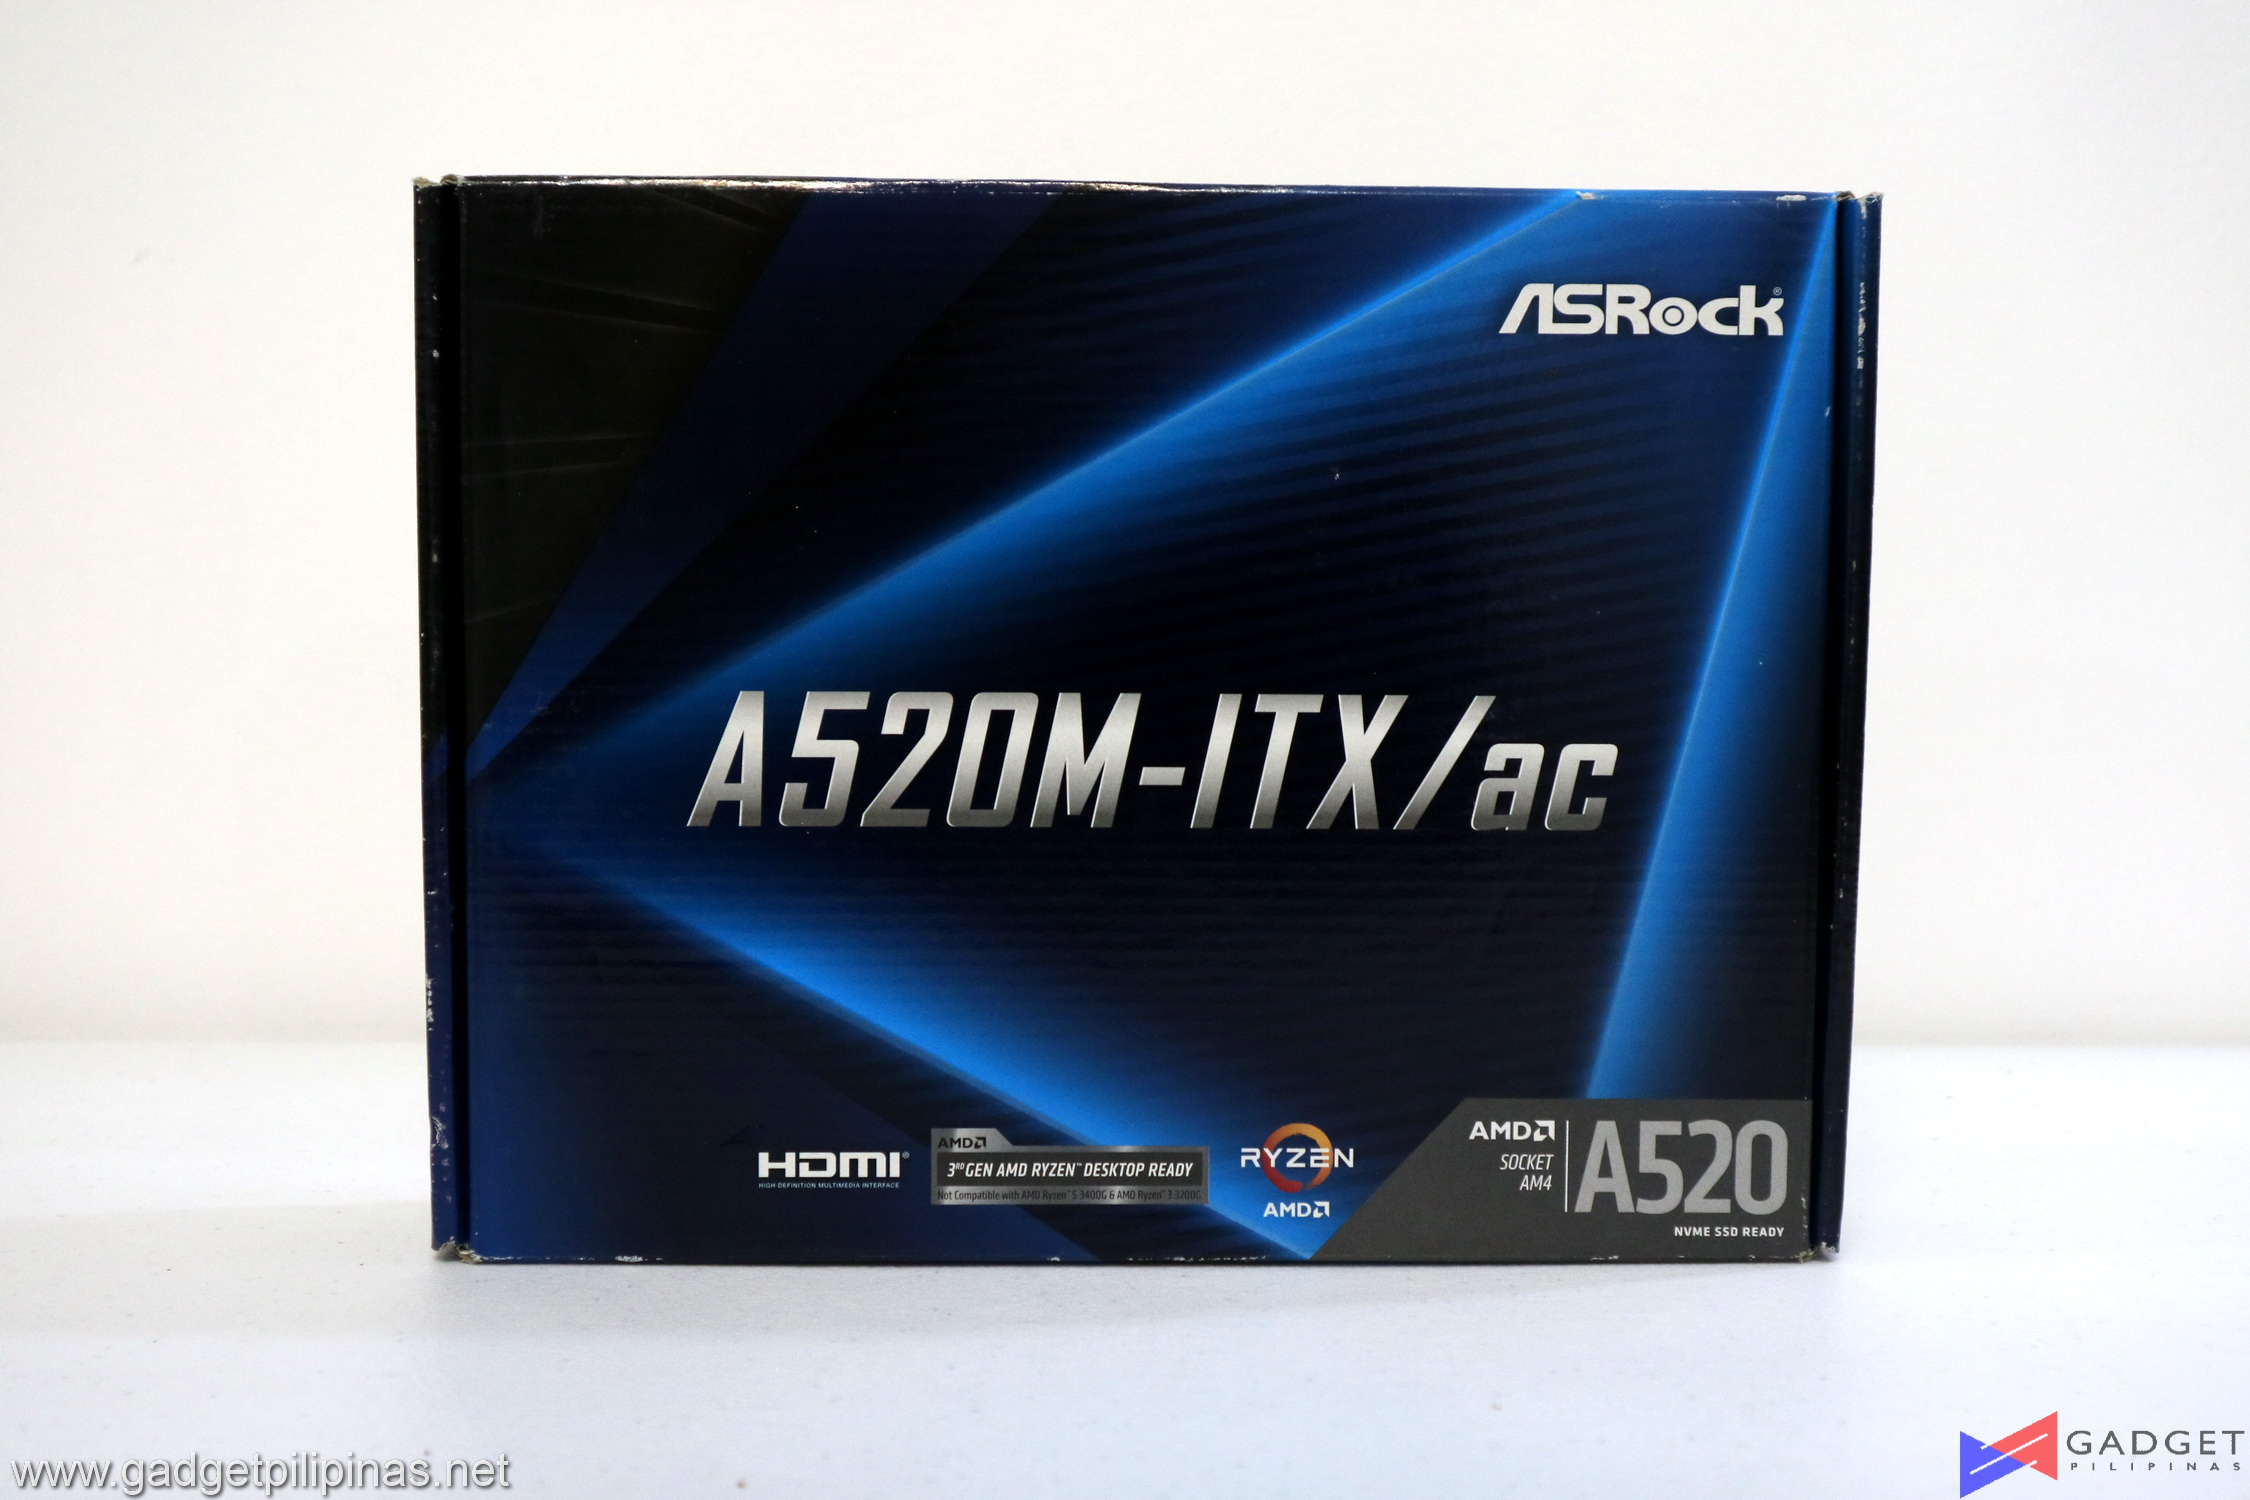 Php 60k ITX Gaming PC Build Guide 2021 Philippines - ASRock A520M ITX AC